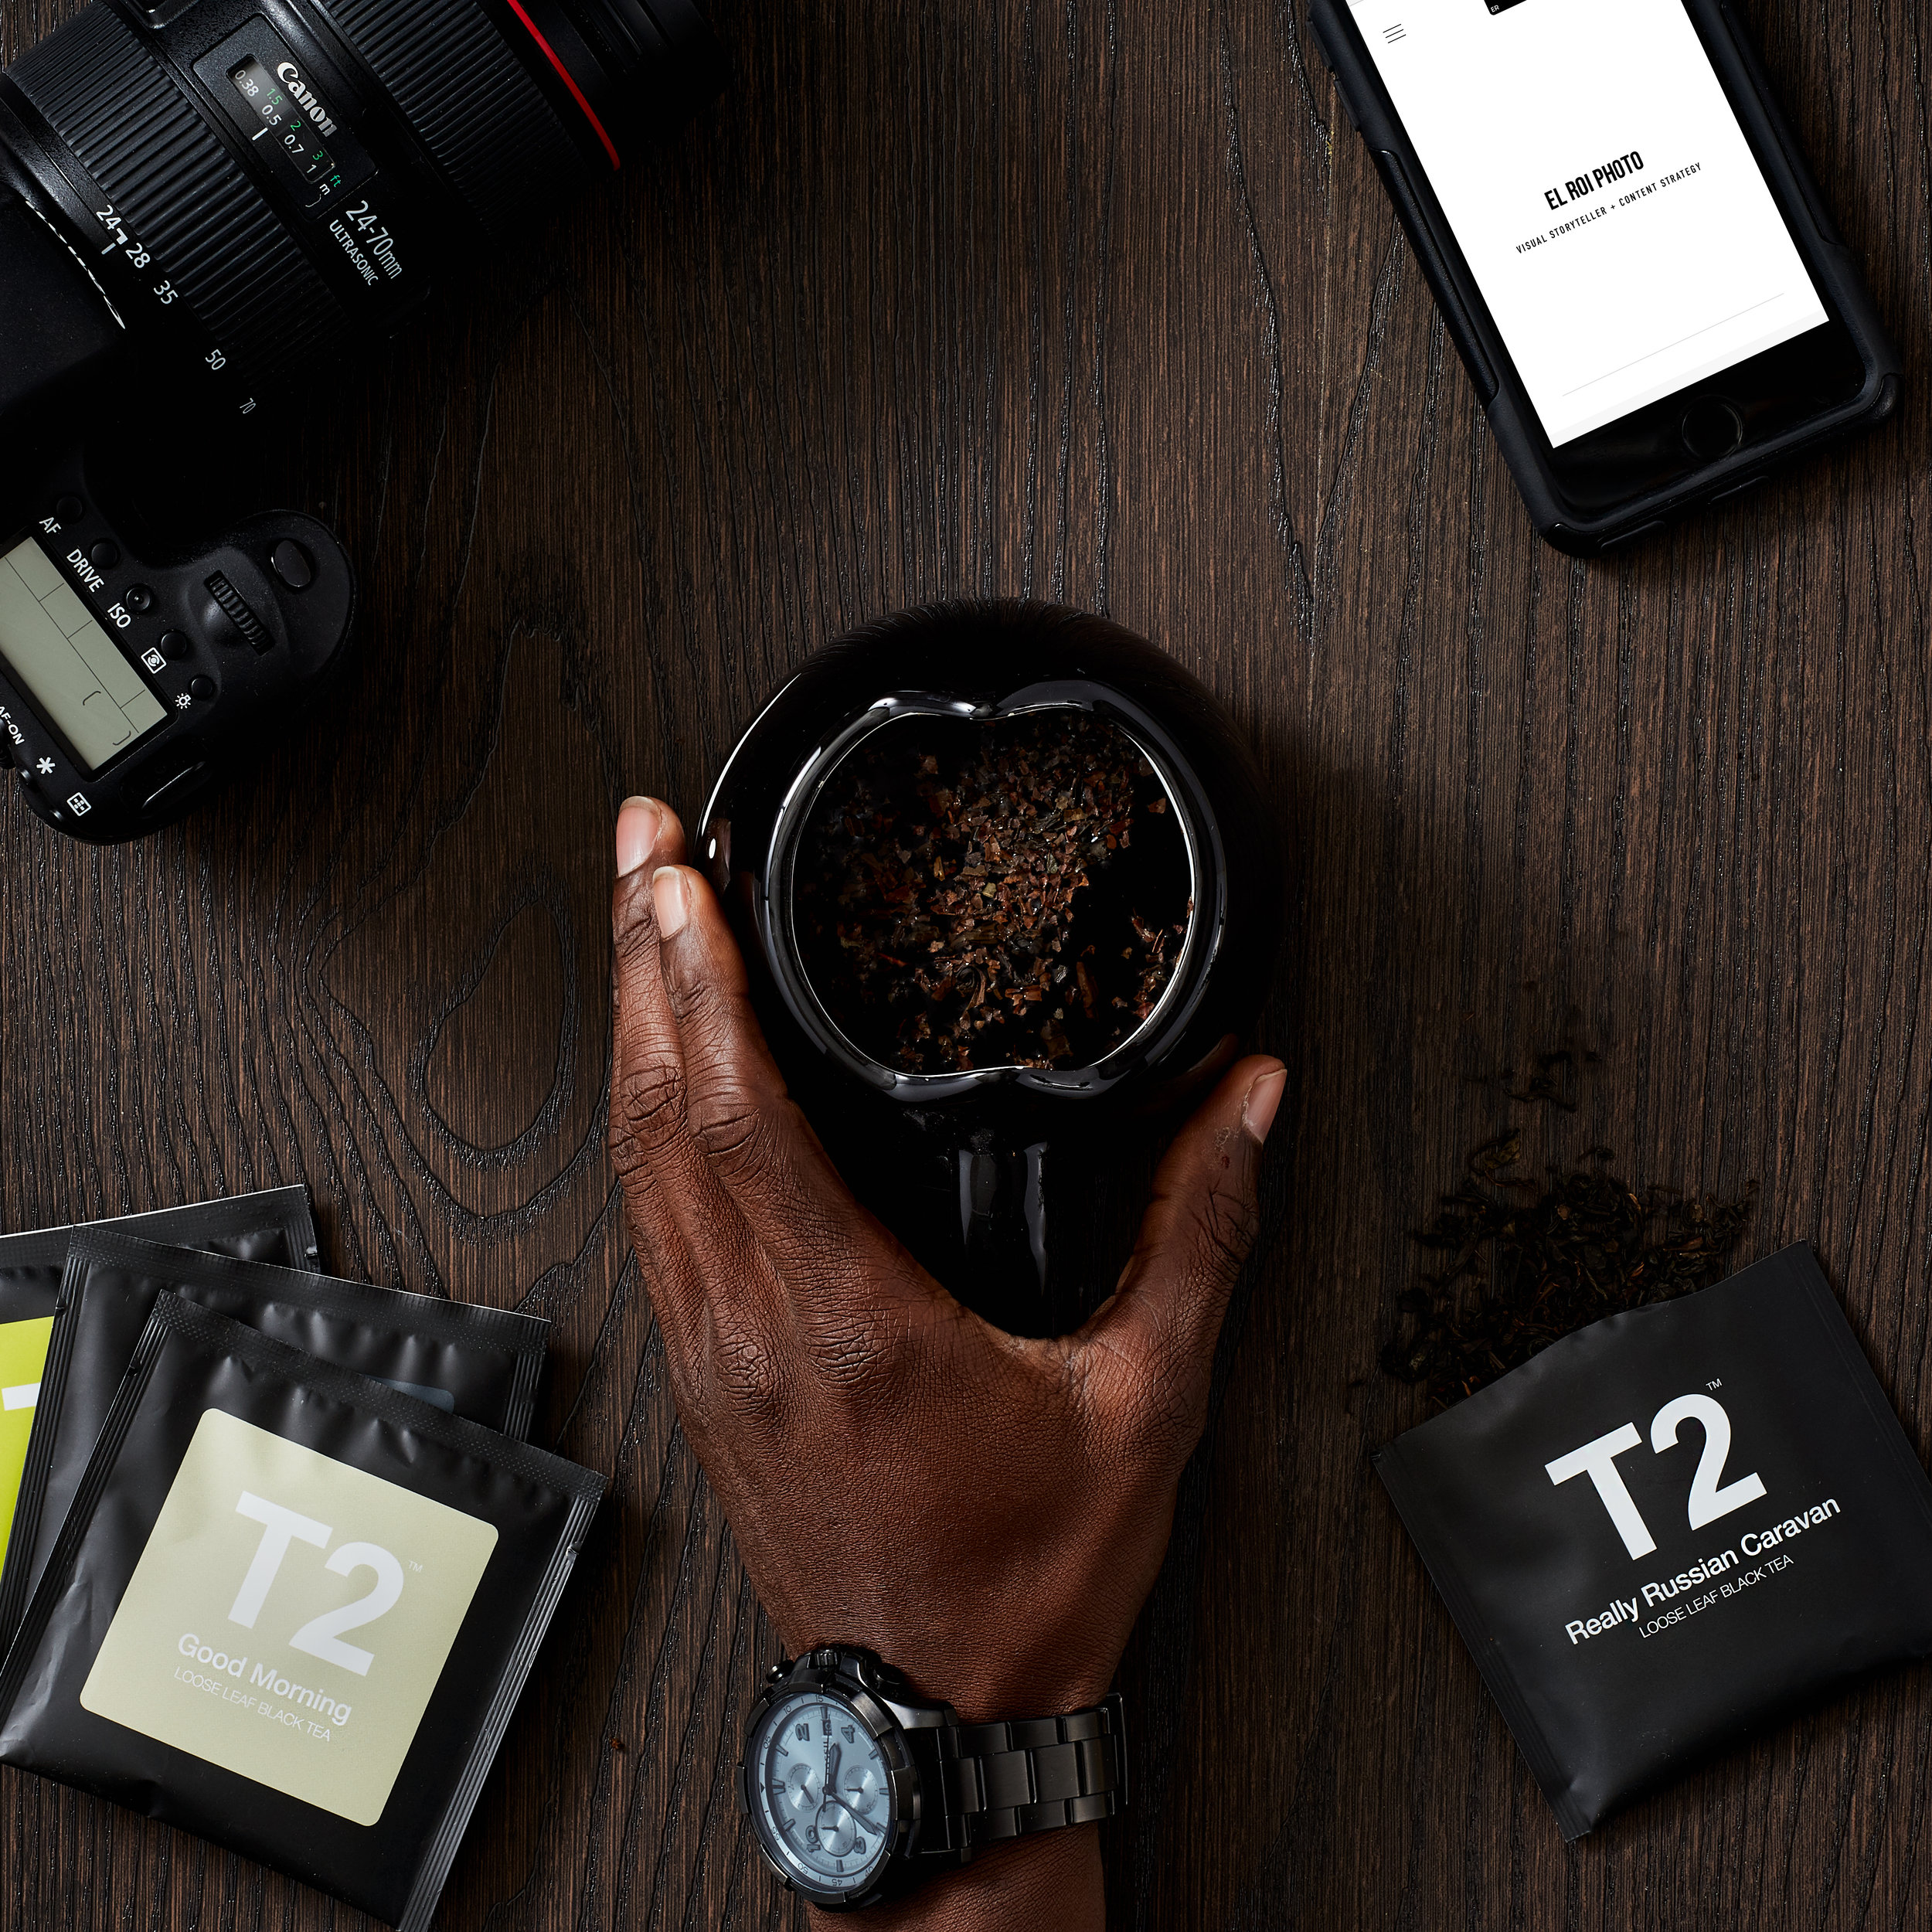 Commercial, table top, social media, influencer brand photo for T2 Tea, Canon, Fossil Watches - taken by Javier Edwards